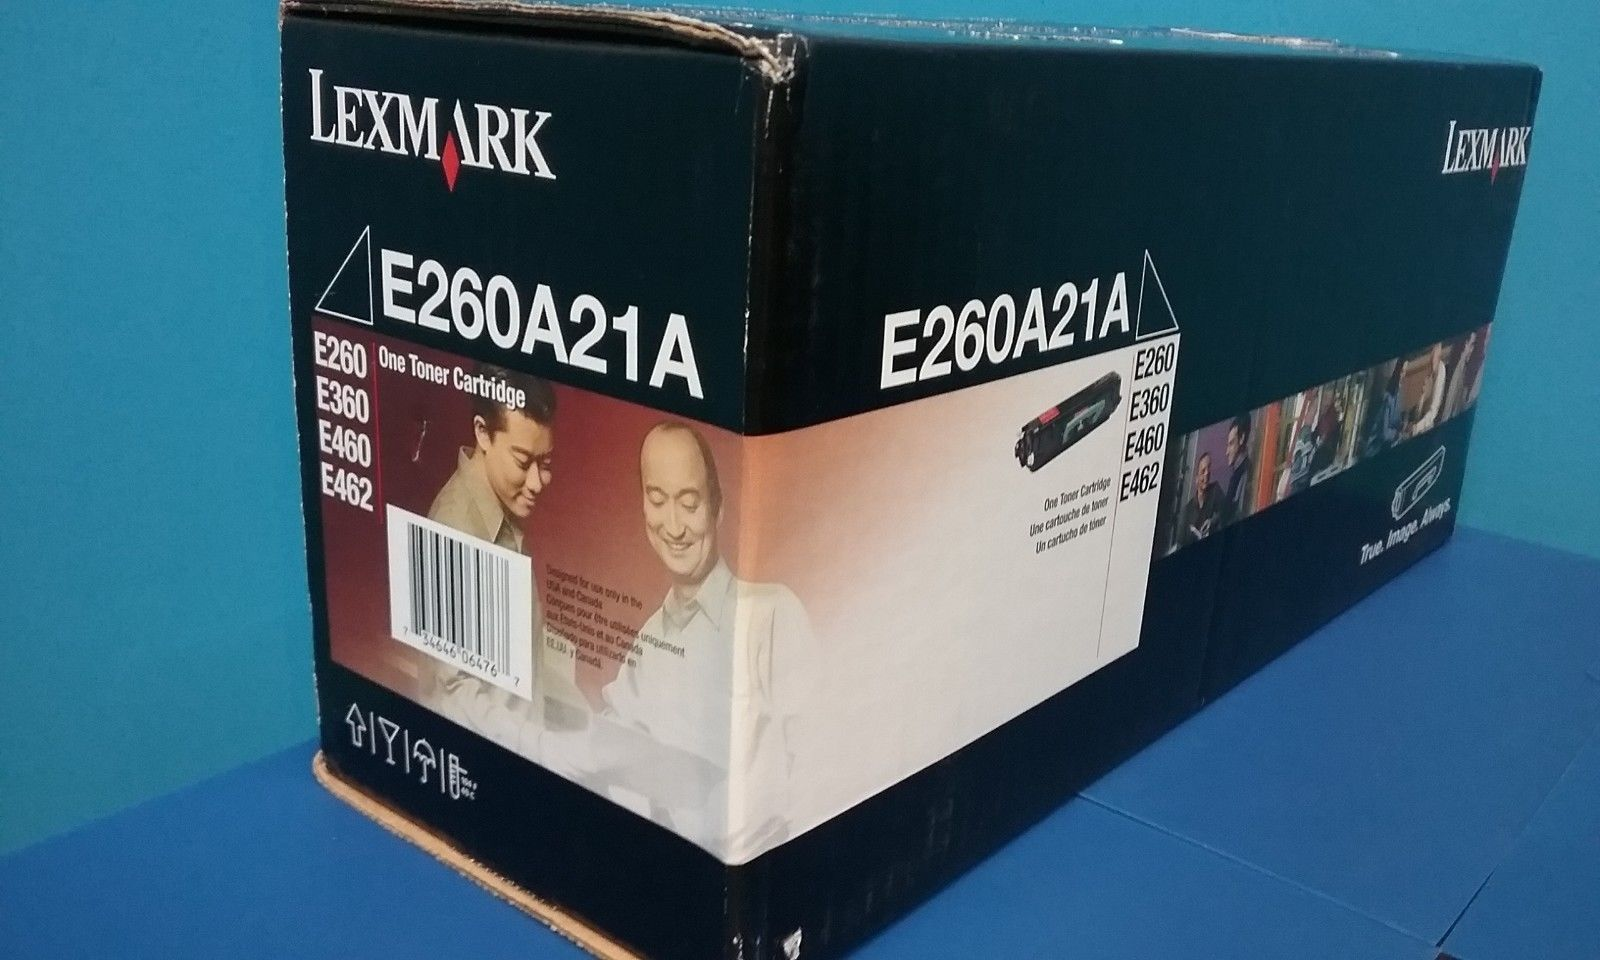 SUSTAINABLE EARTH Remanufactured Toner Cartridge Replacement for Lexmark E260 Black